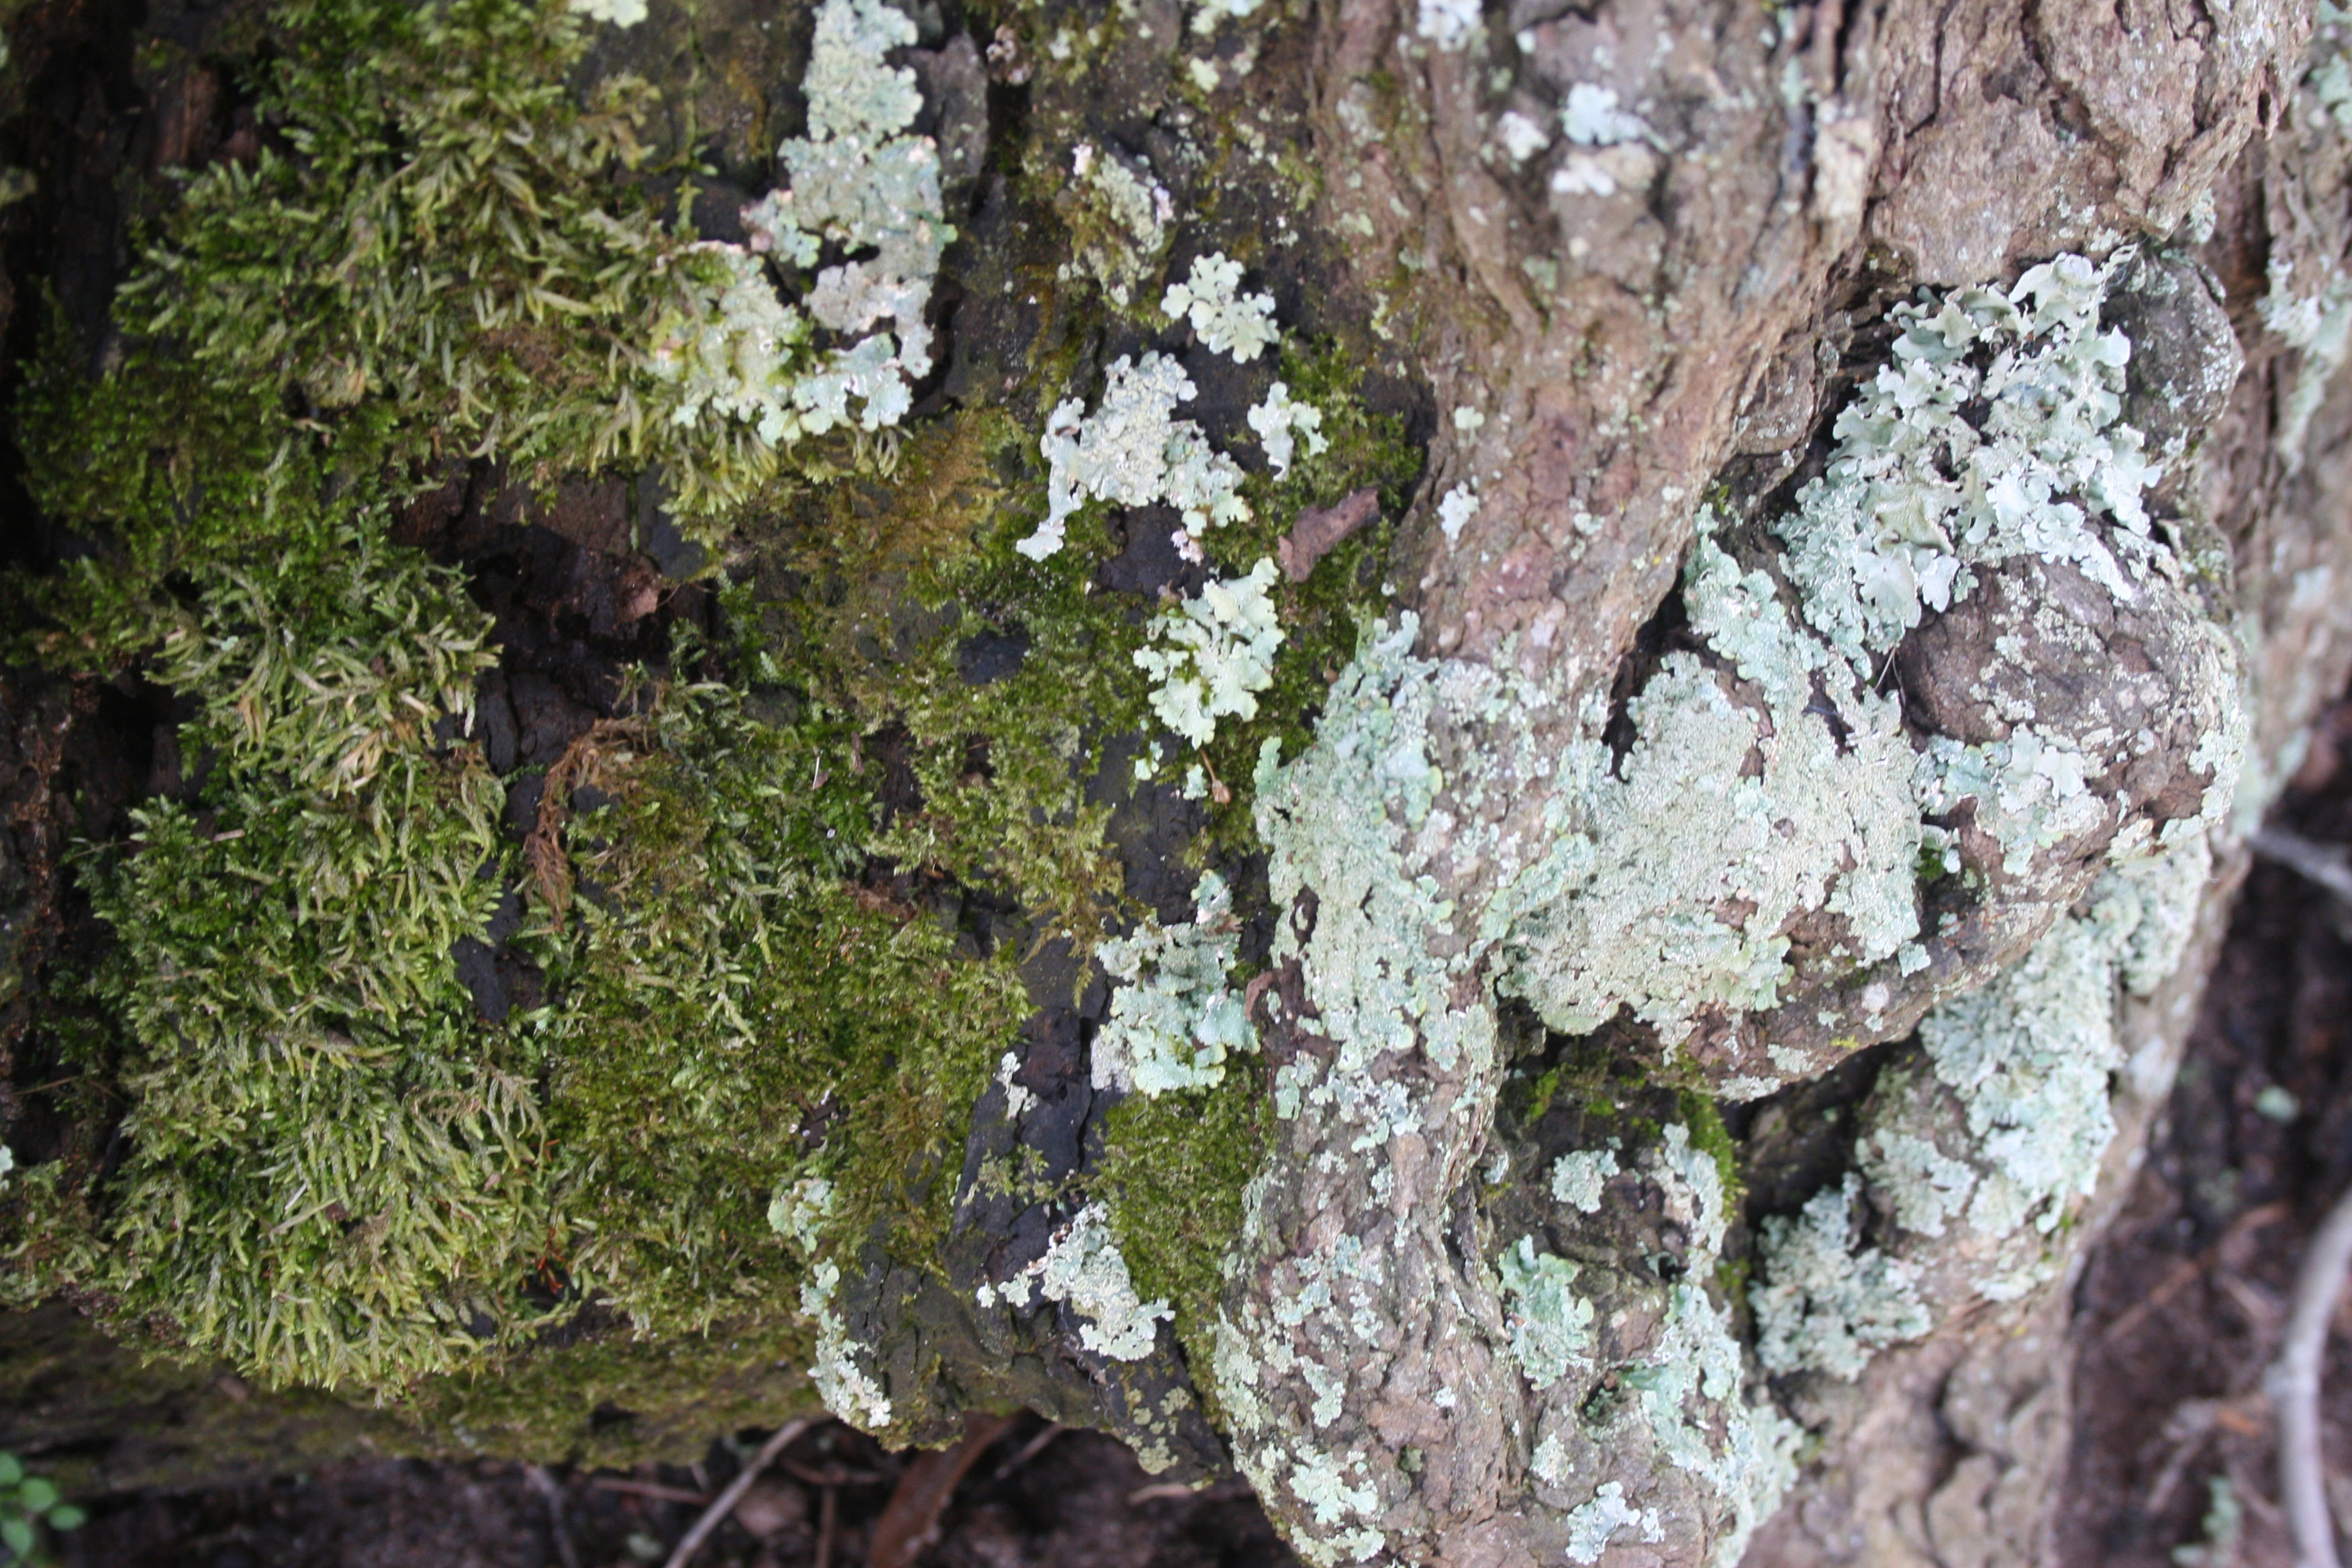 Moss and lichens grow on the base of a redbud tree on the University of Georgia campus in Griffin, Ga.